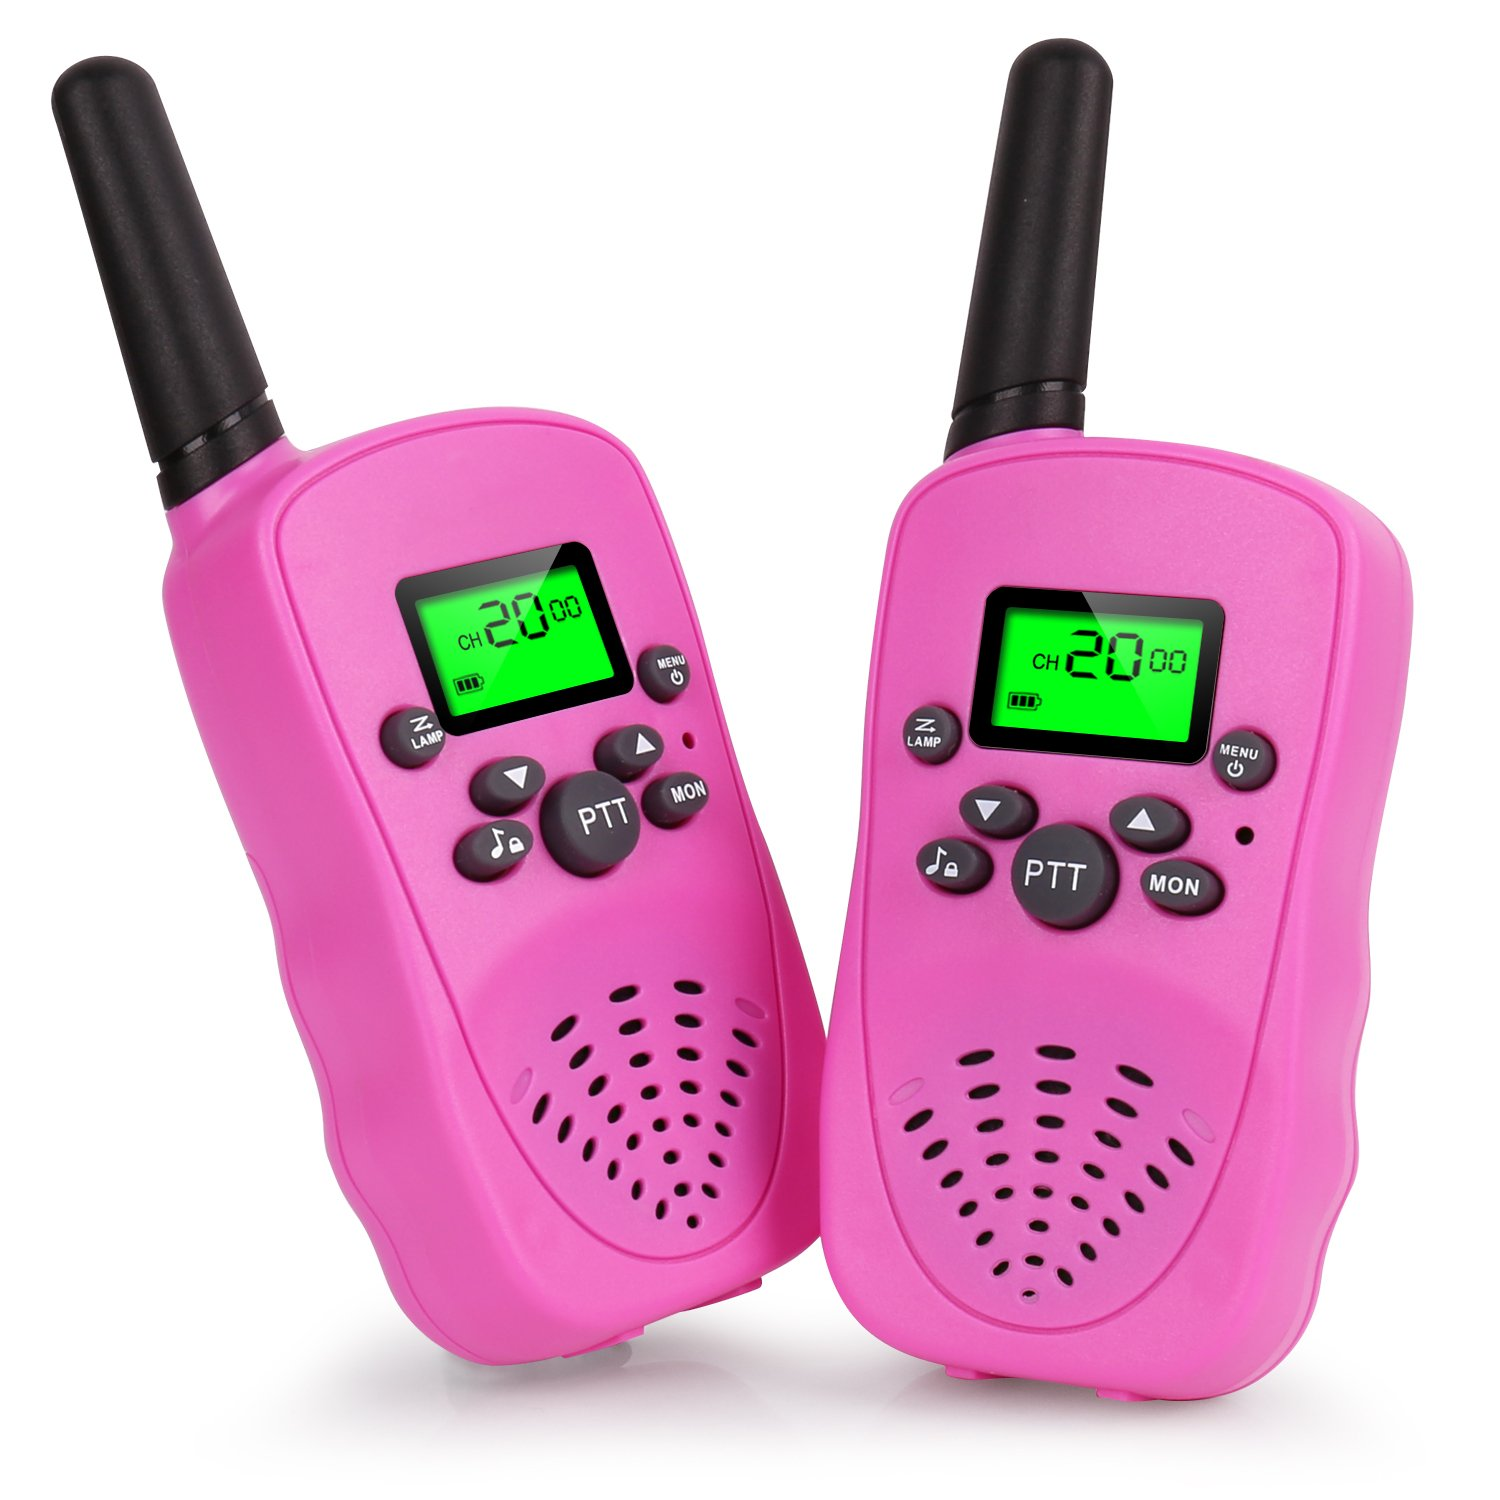 Sokos Walkie Talkies for Kids